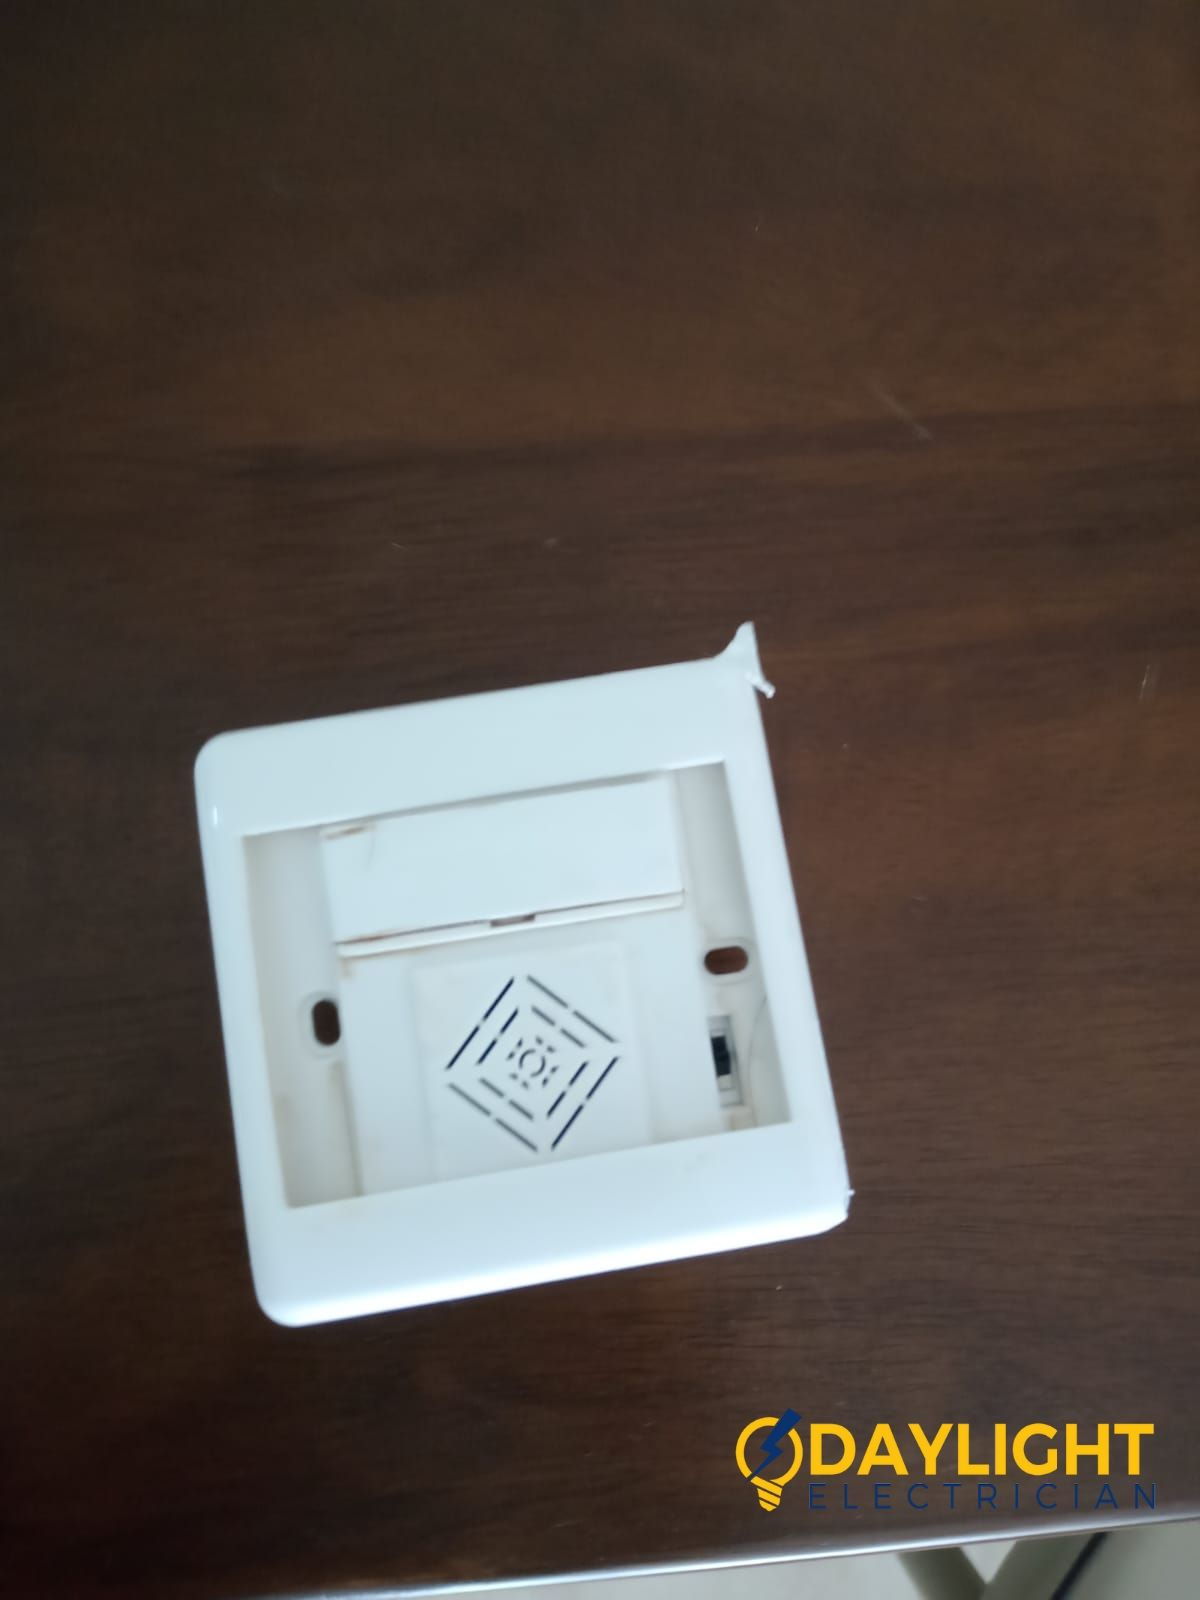 Doorbell Replacement With Wiring Fault In Singapore Hdb Bishan Electrician Services Singapore